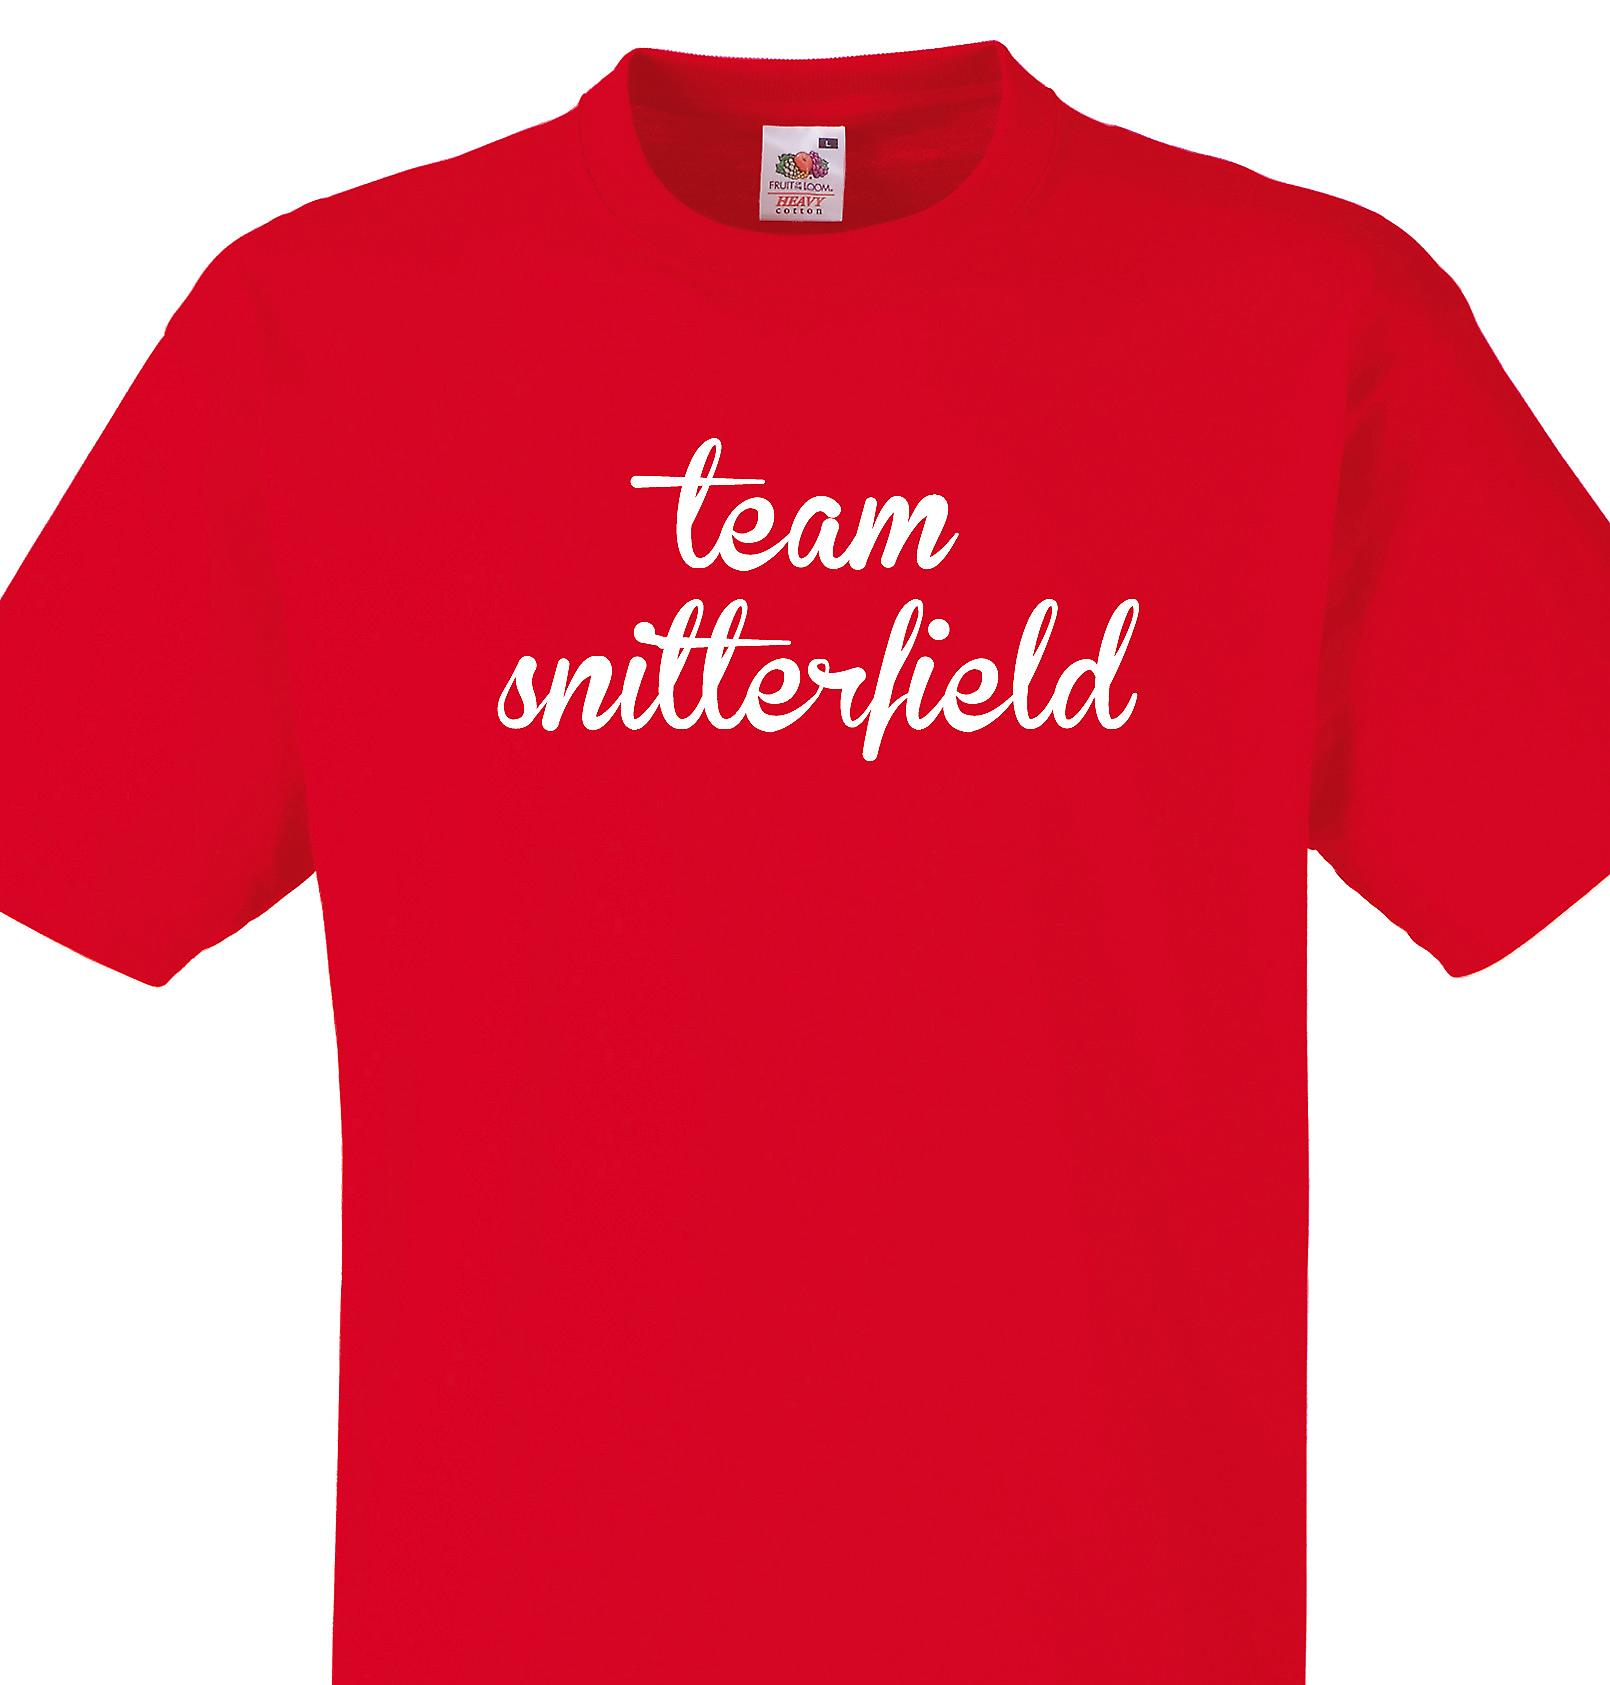 Team Snitterfield Red T shirt